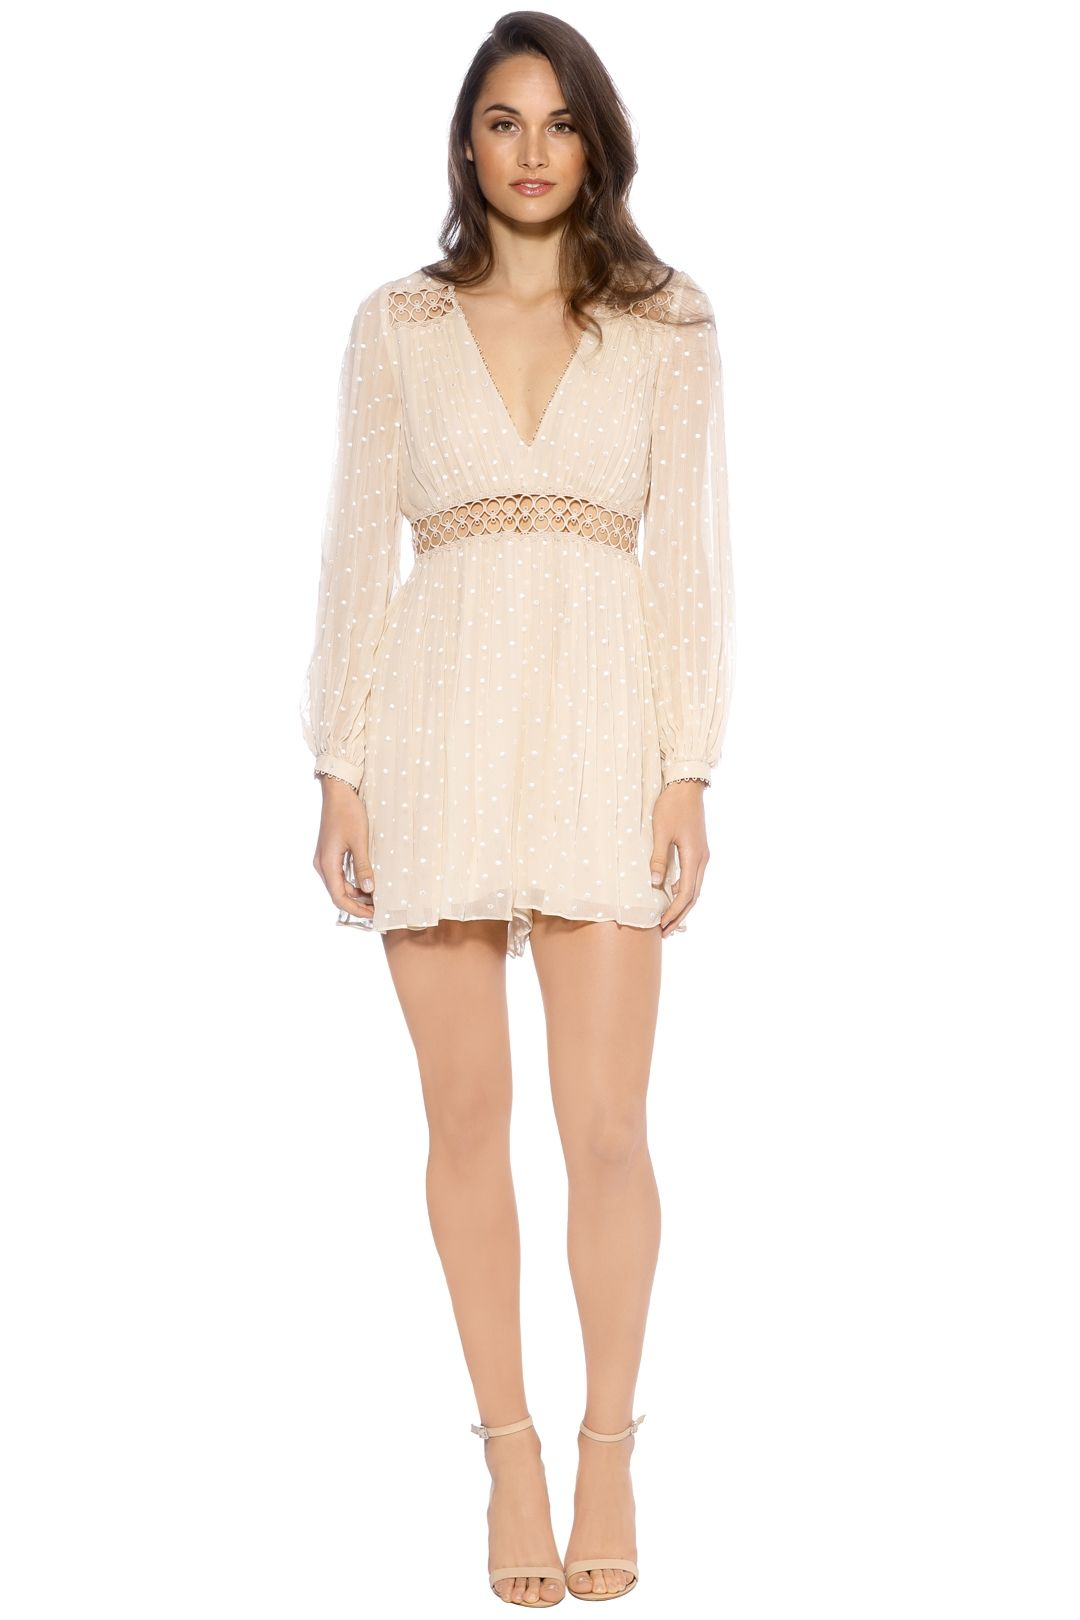 Zimmermann - Bowerbird Empire Playsuit - Front - Beige